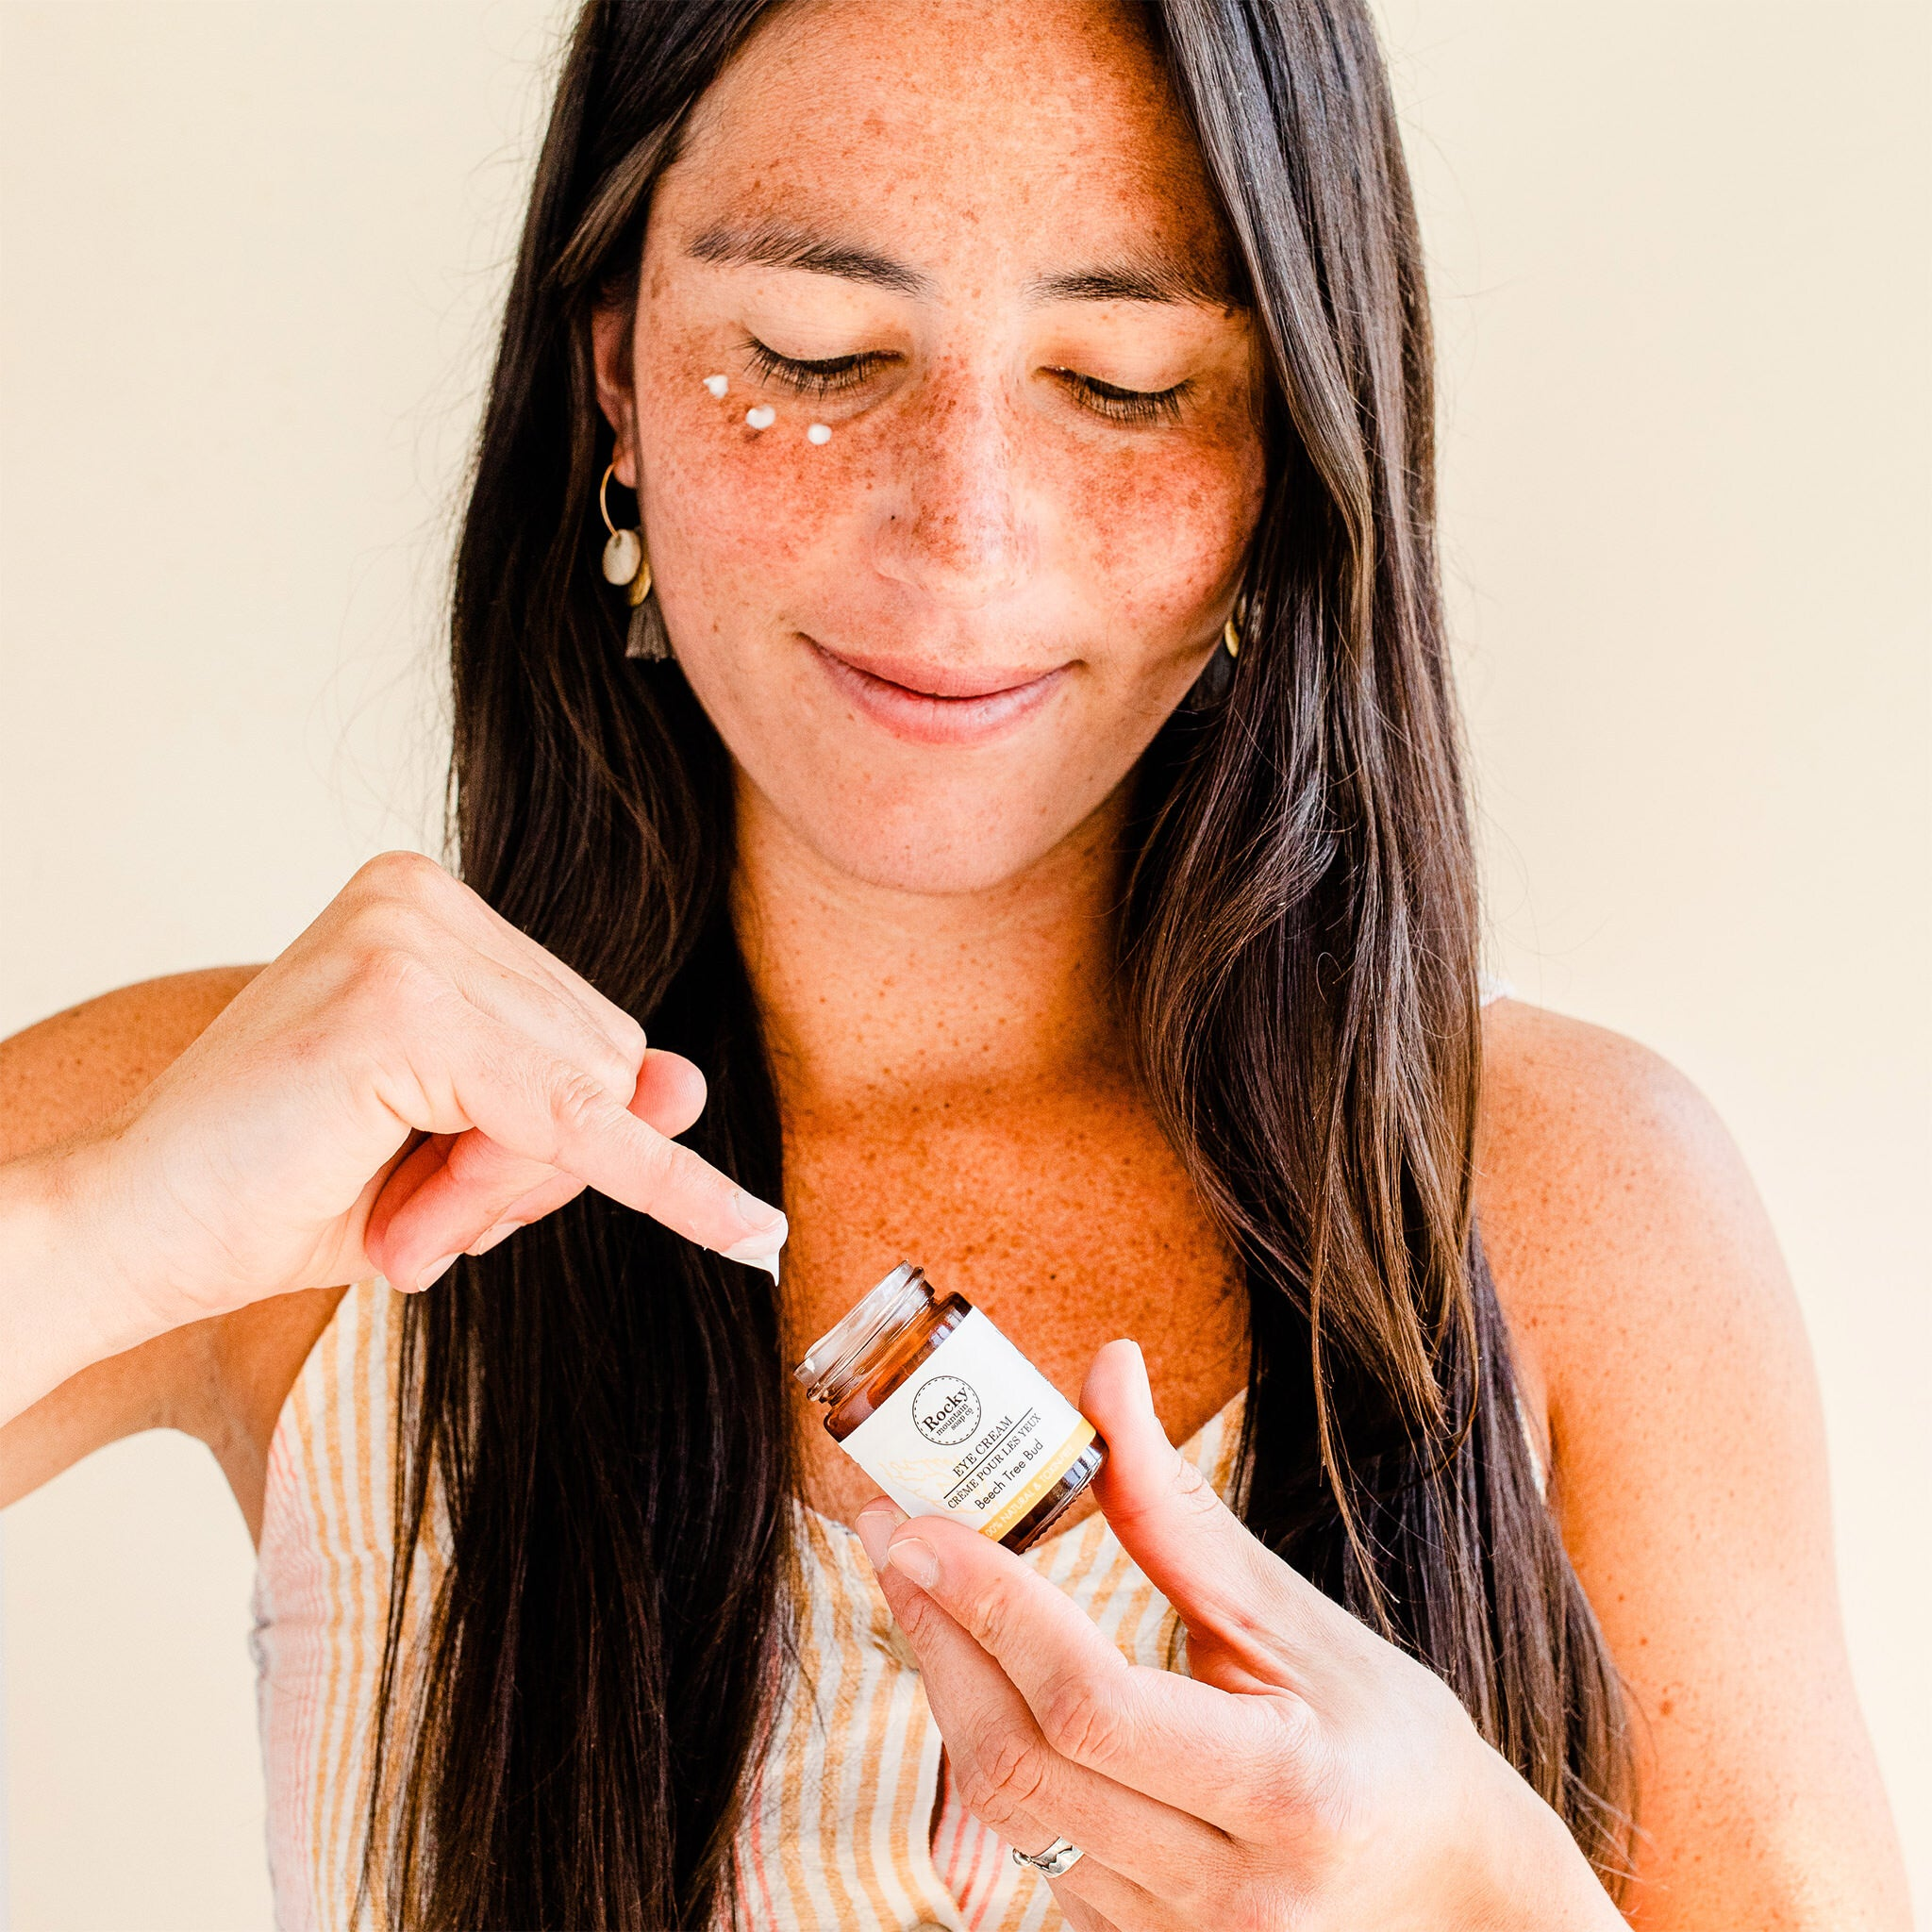 Image of woman applying natural eye cream from rocky mountain soap company.